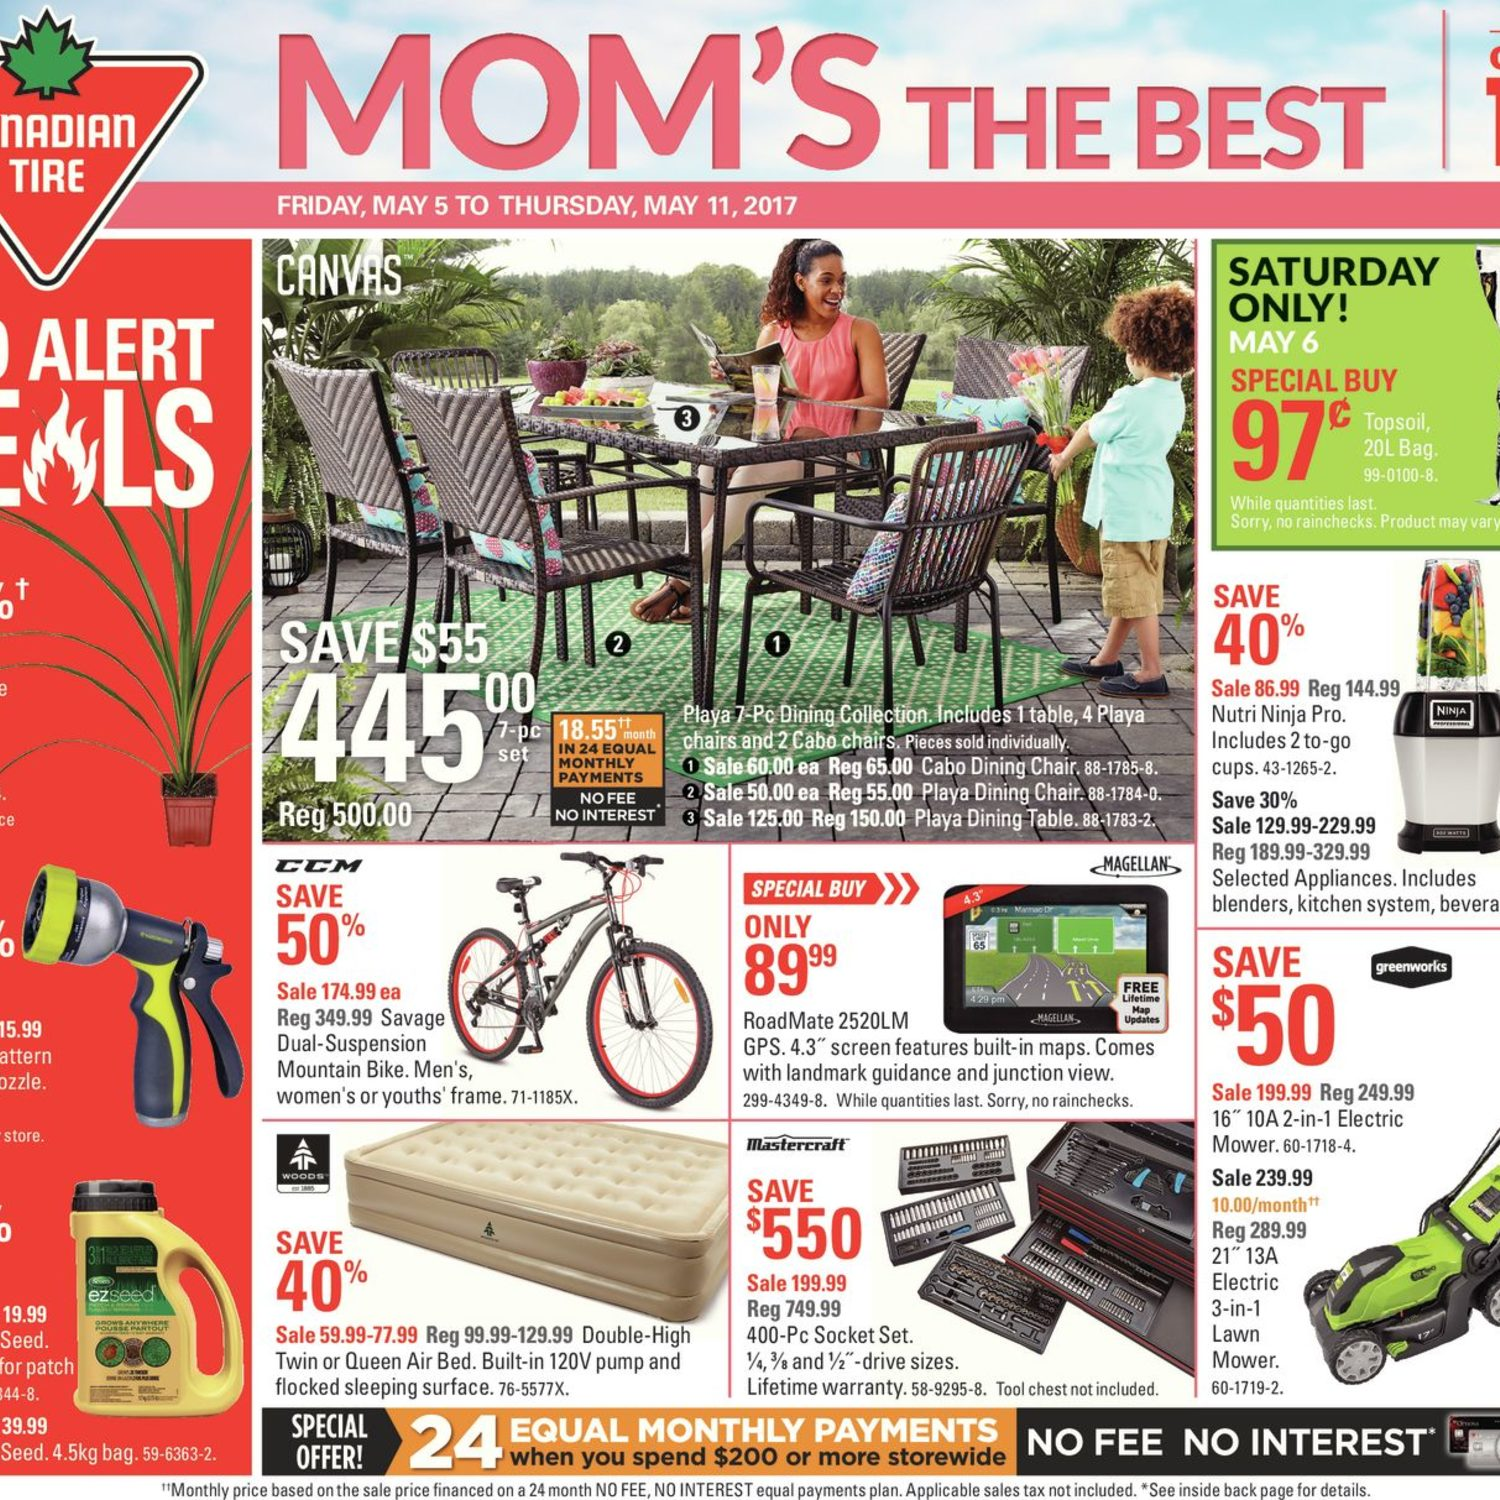 Canadian Tire Weekly Flyer Weekly Mom s The Best May 5 – 11